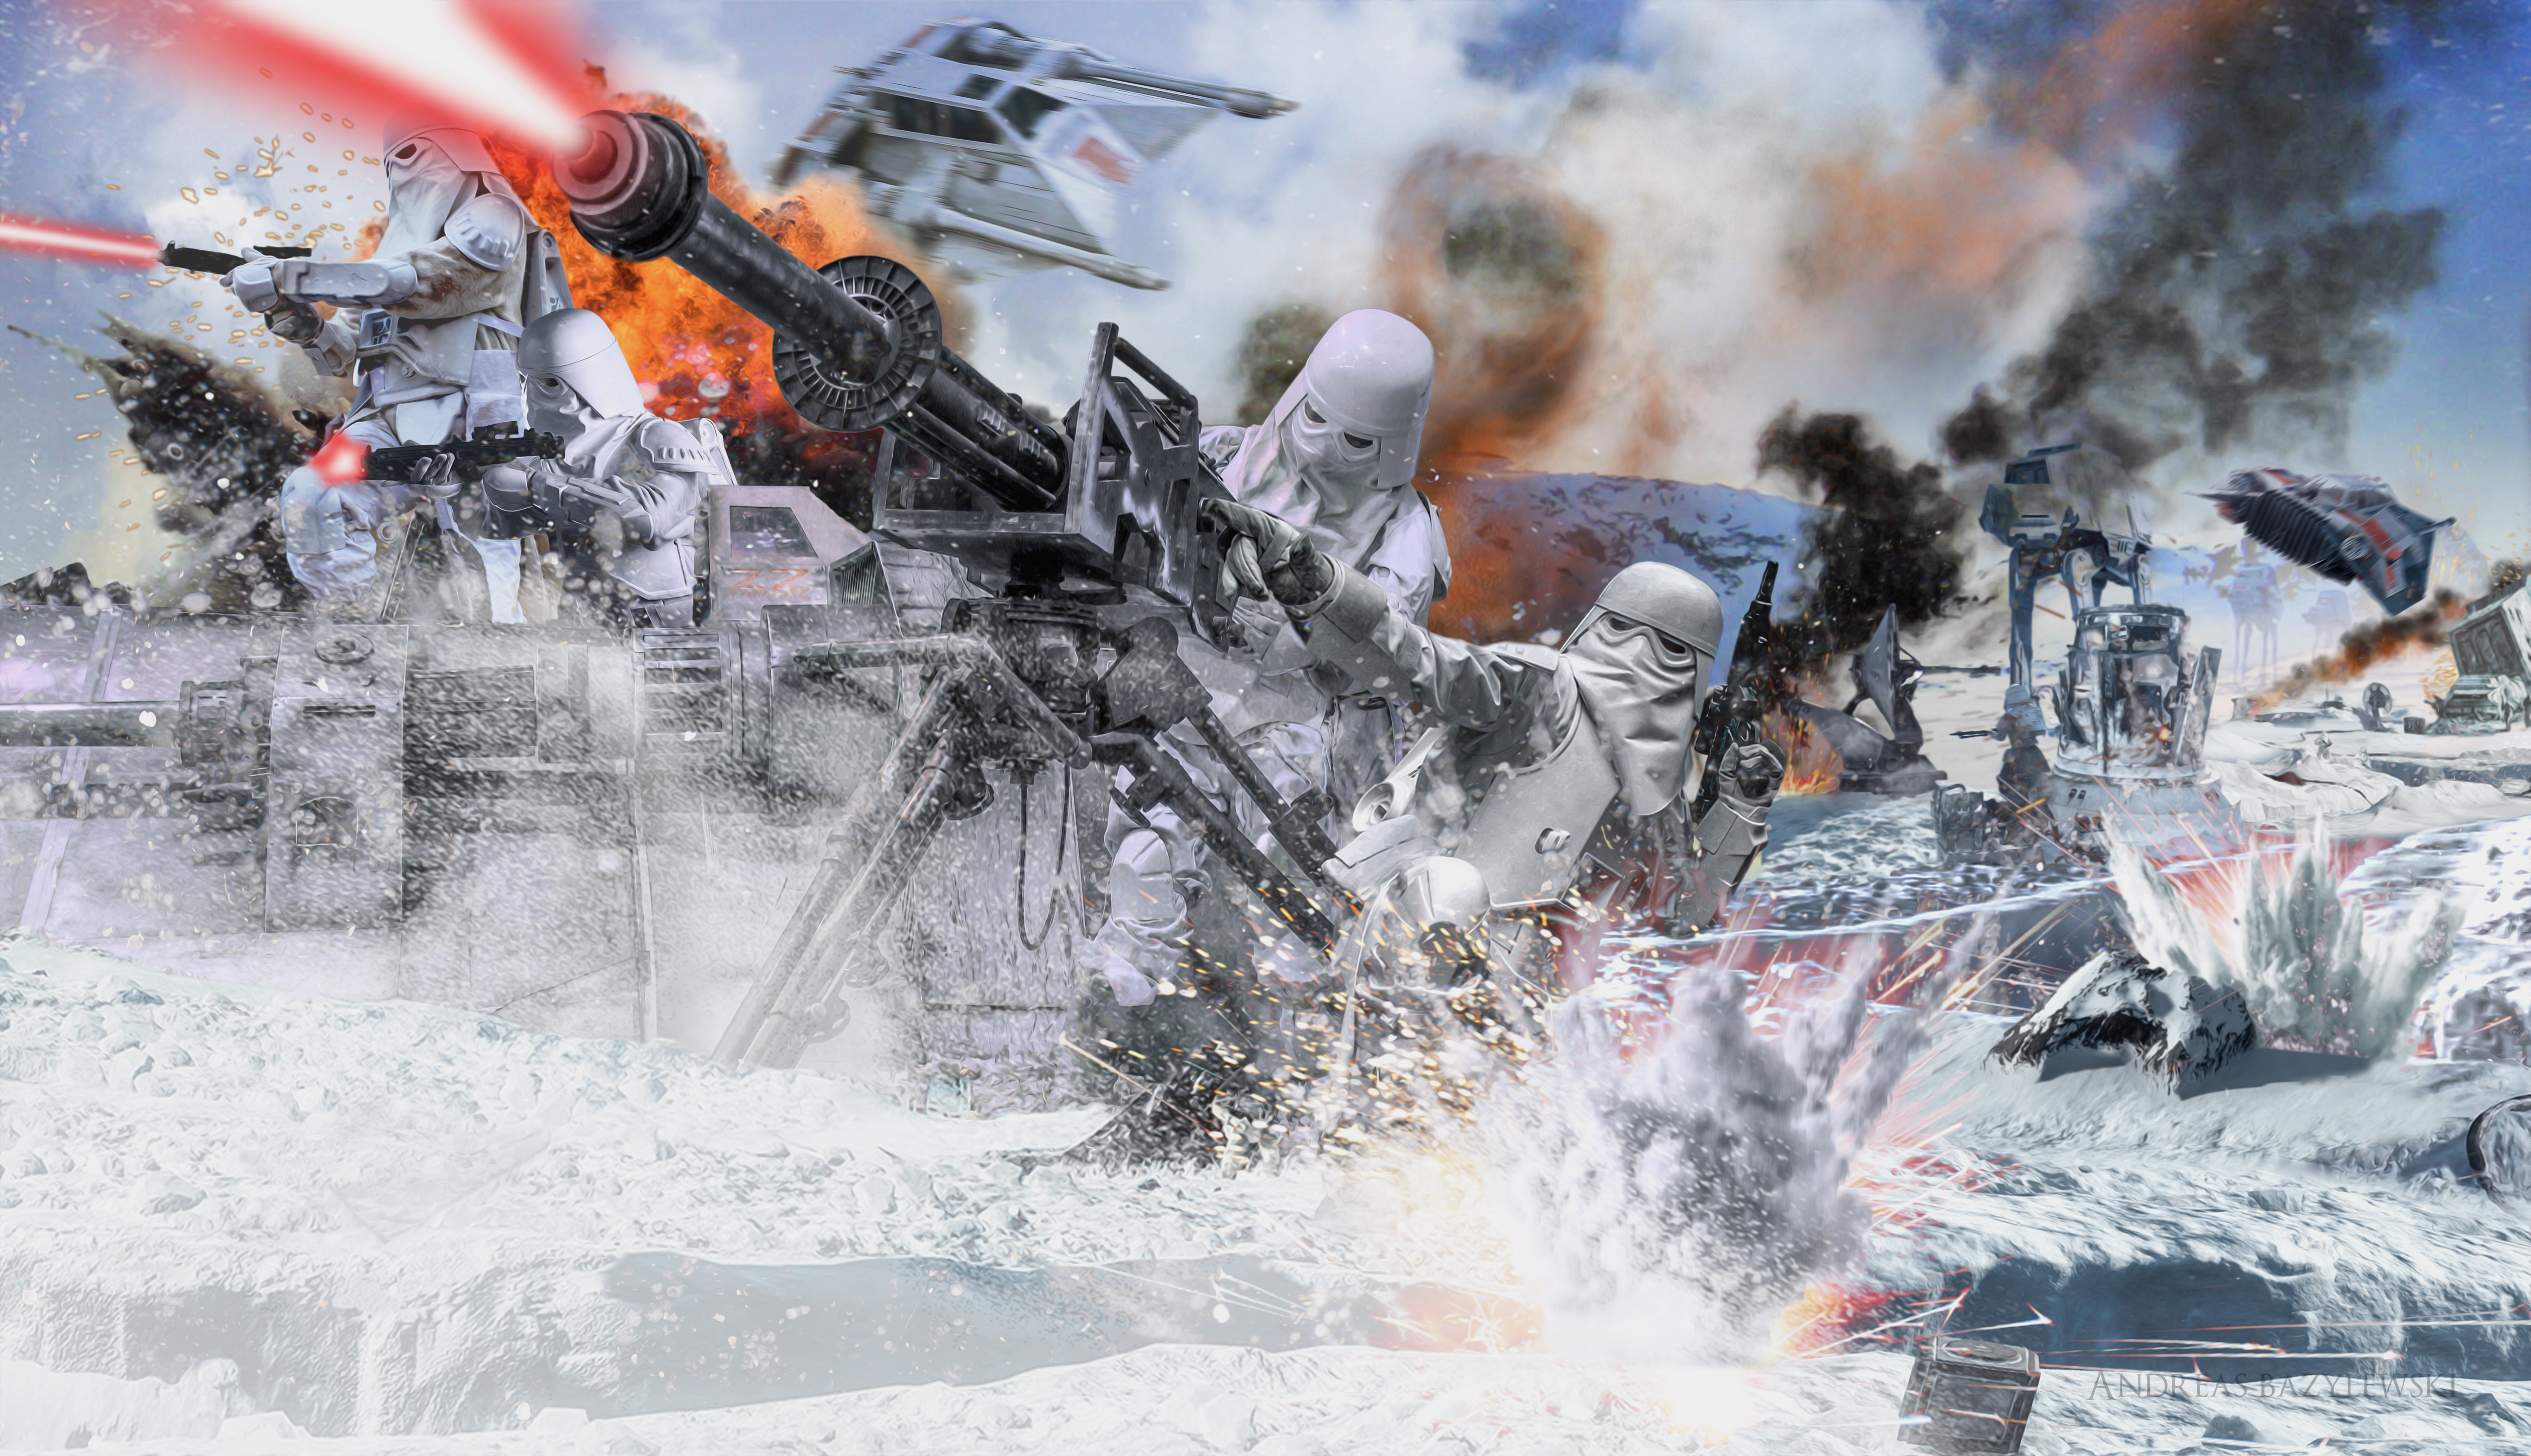 Free Download 14 Hoth Star Wars Hd Wallpapers Background Images Wallpaper 7511x4321 For Your Desktop Mobile Tablet Explore 40 Star Wars Hoth Background Star Wars Hoth Background Star Wars